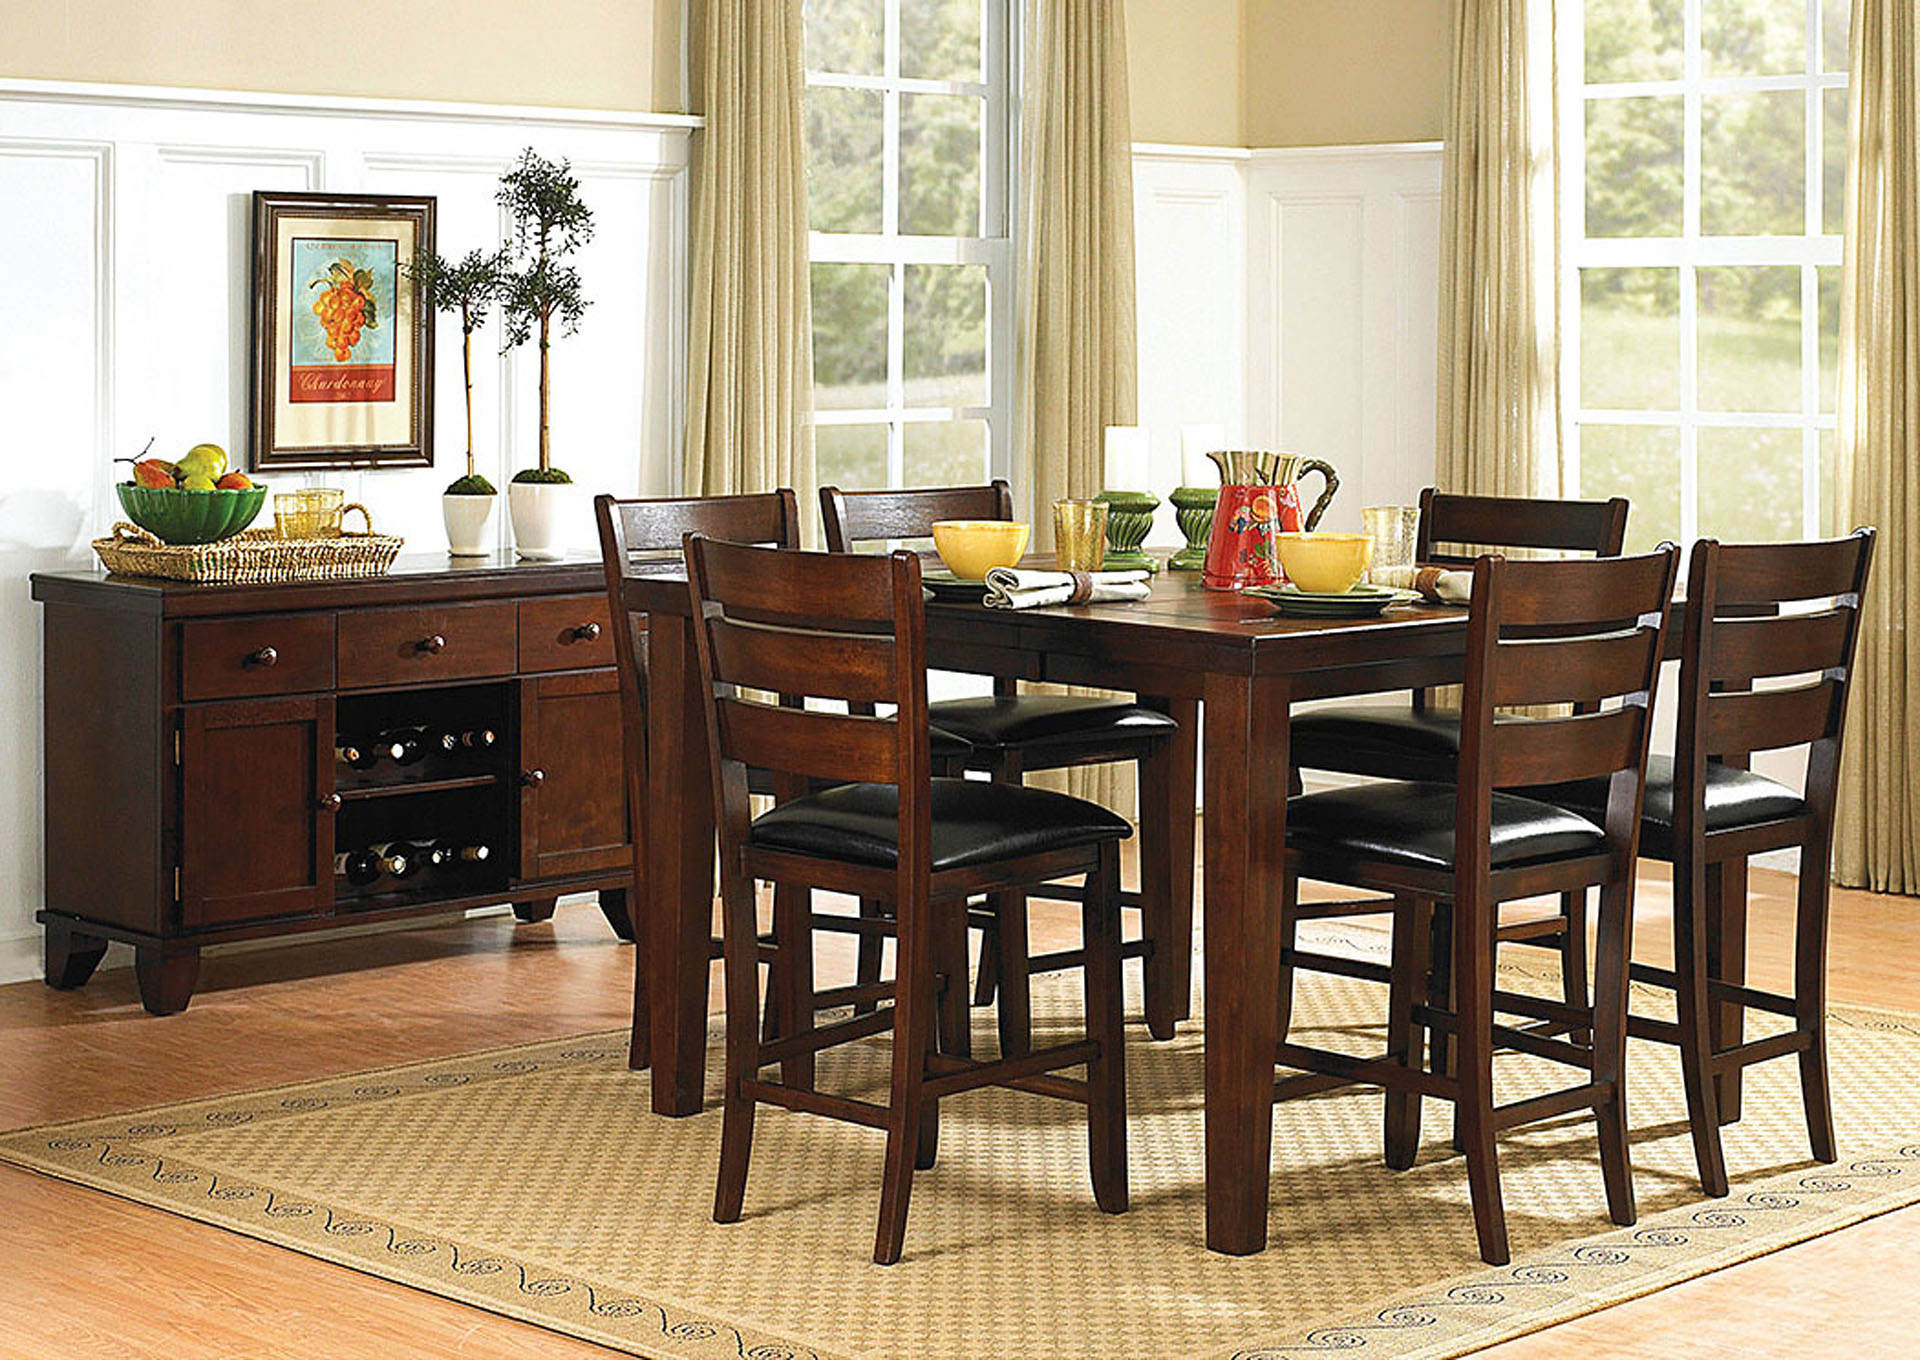 Ameillia Square Dining Table W/4 Counter Height Chairs,Homelegance